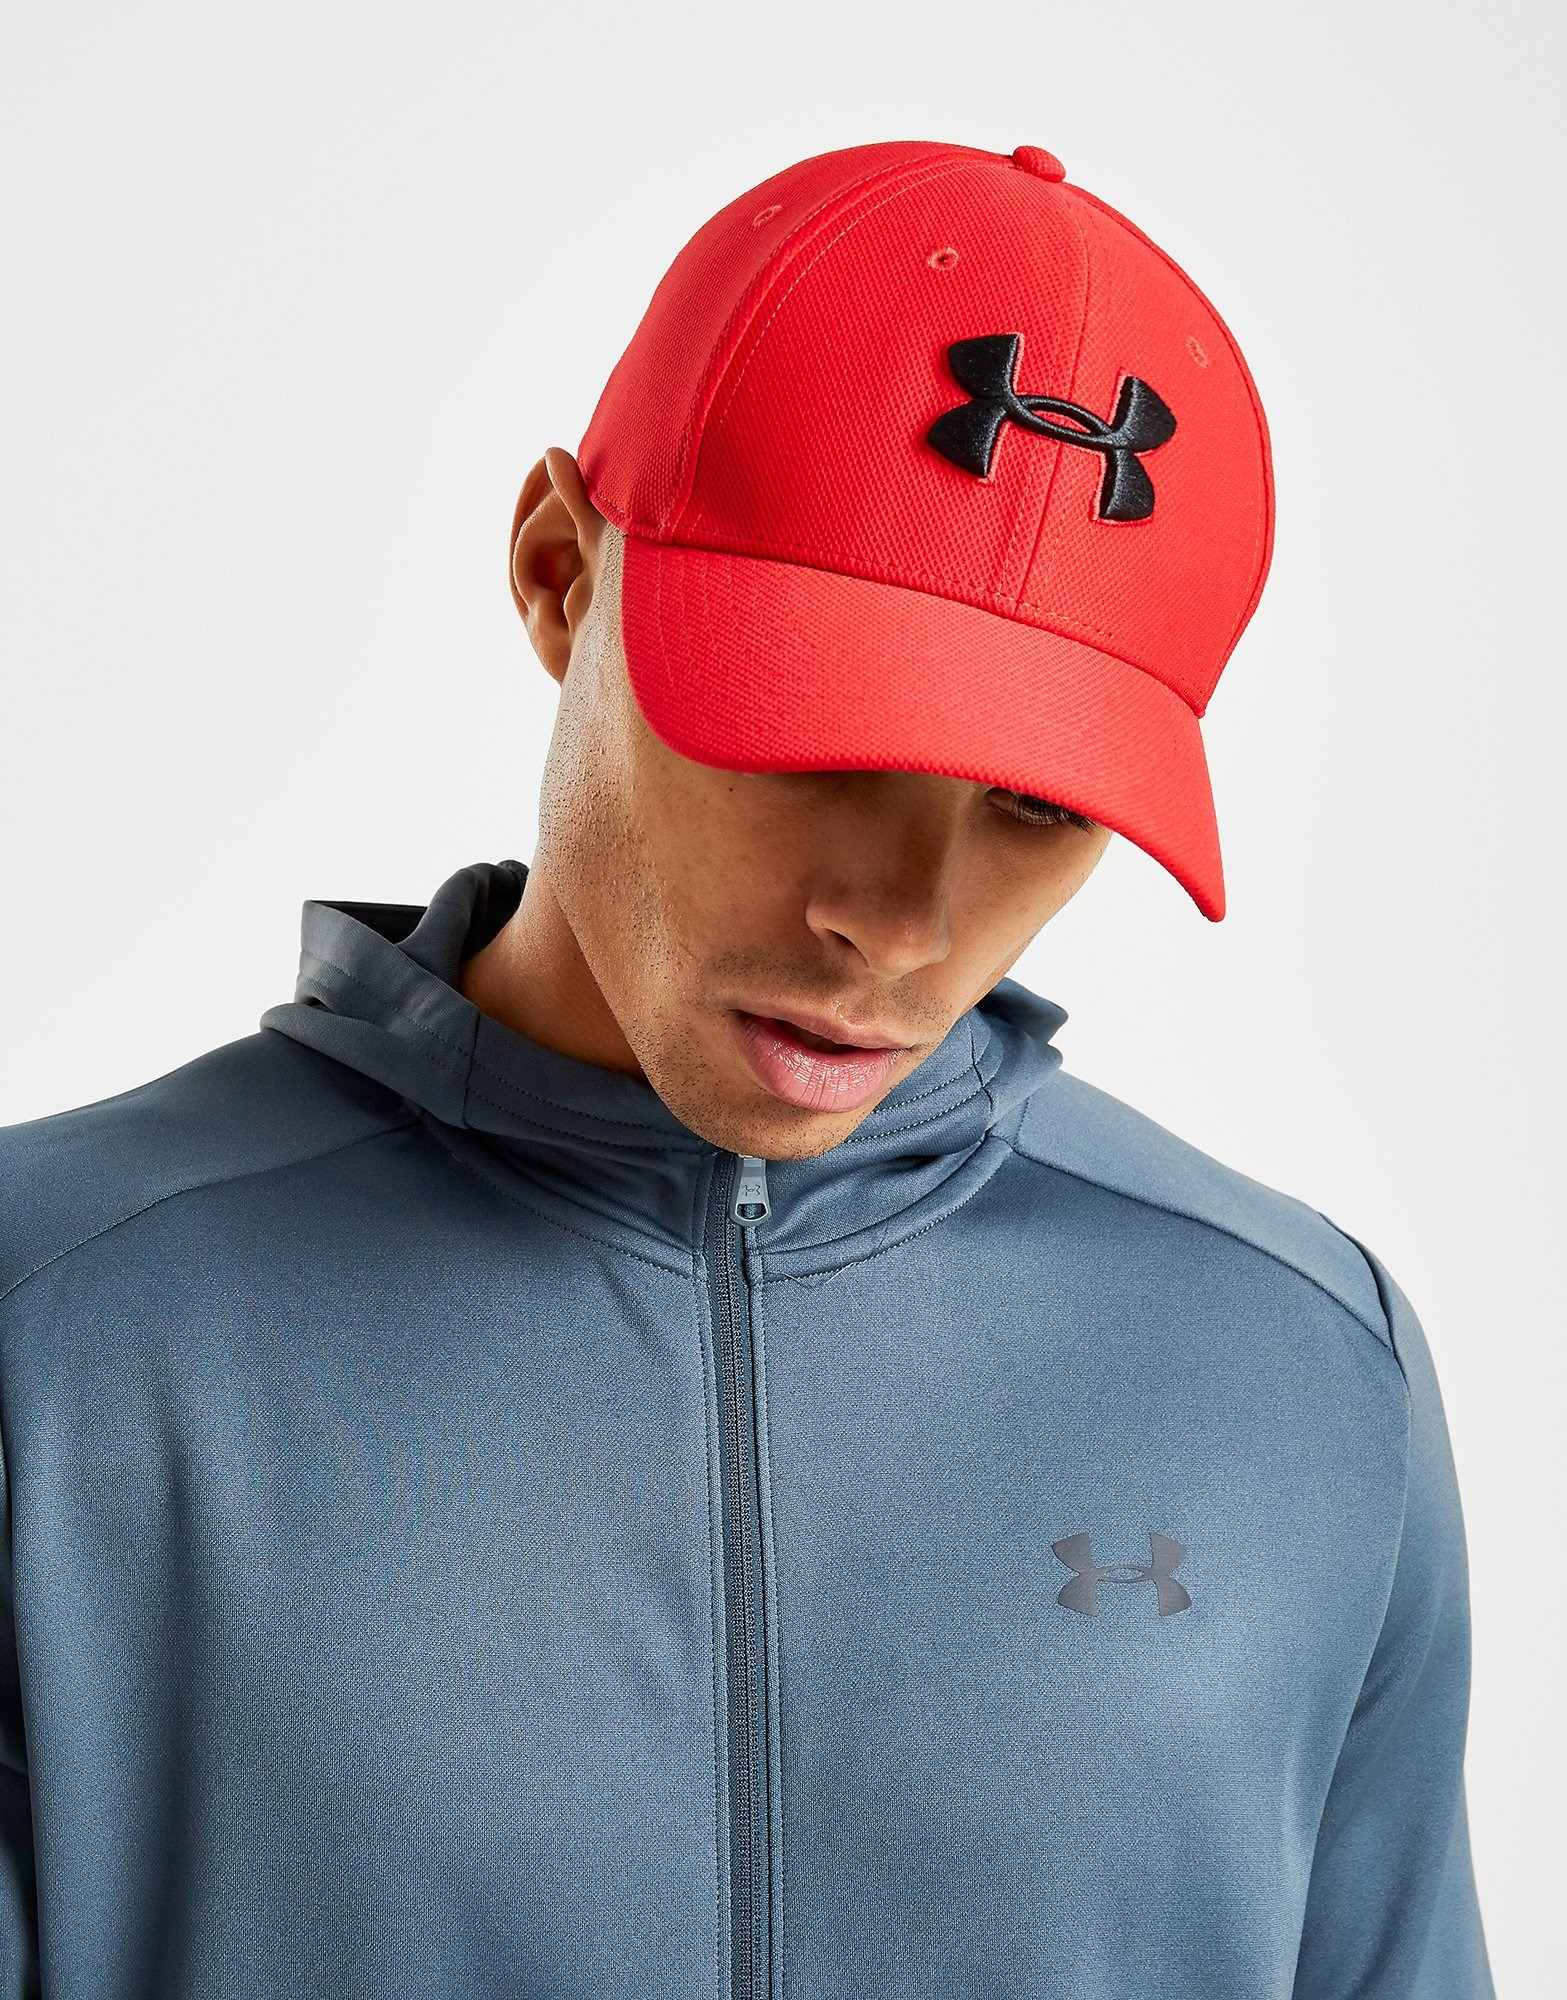 litro músico brindis  Red Under Armour Blitzing 3.0 Cap | JD Sports